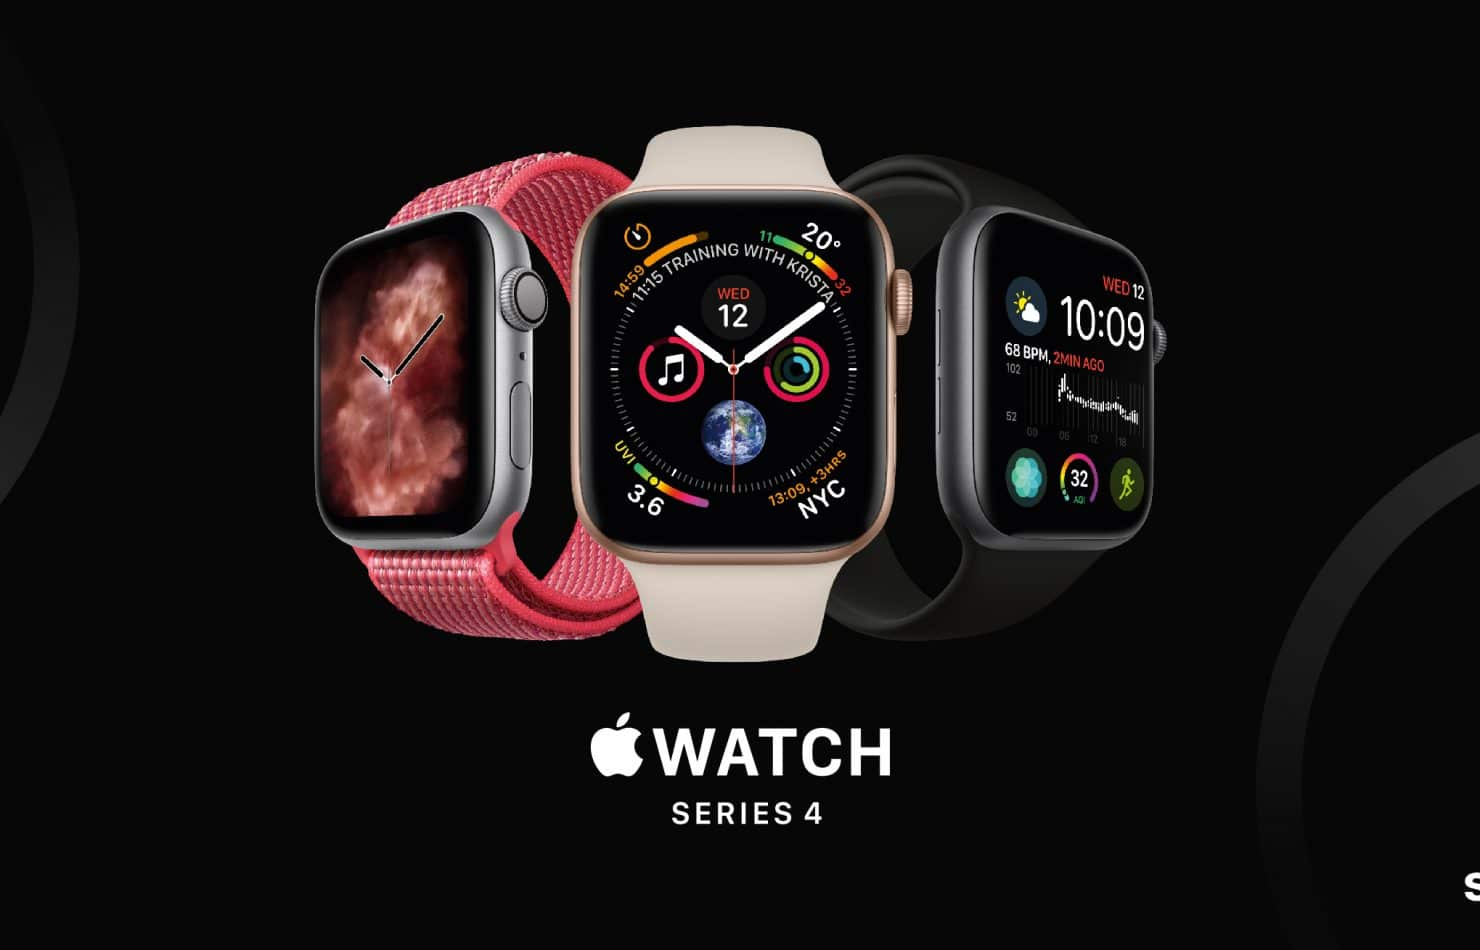 The new Apple Watch Series 4